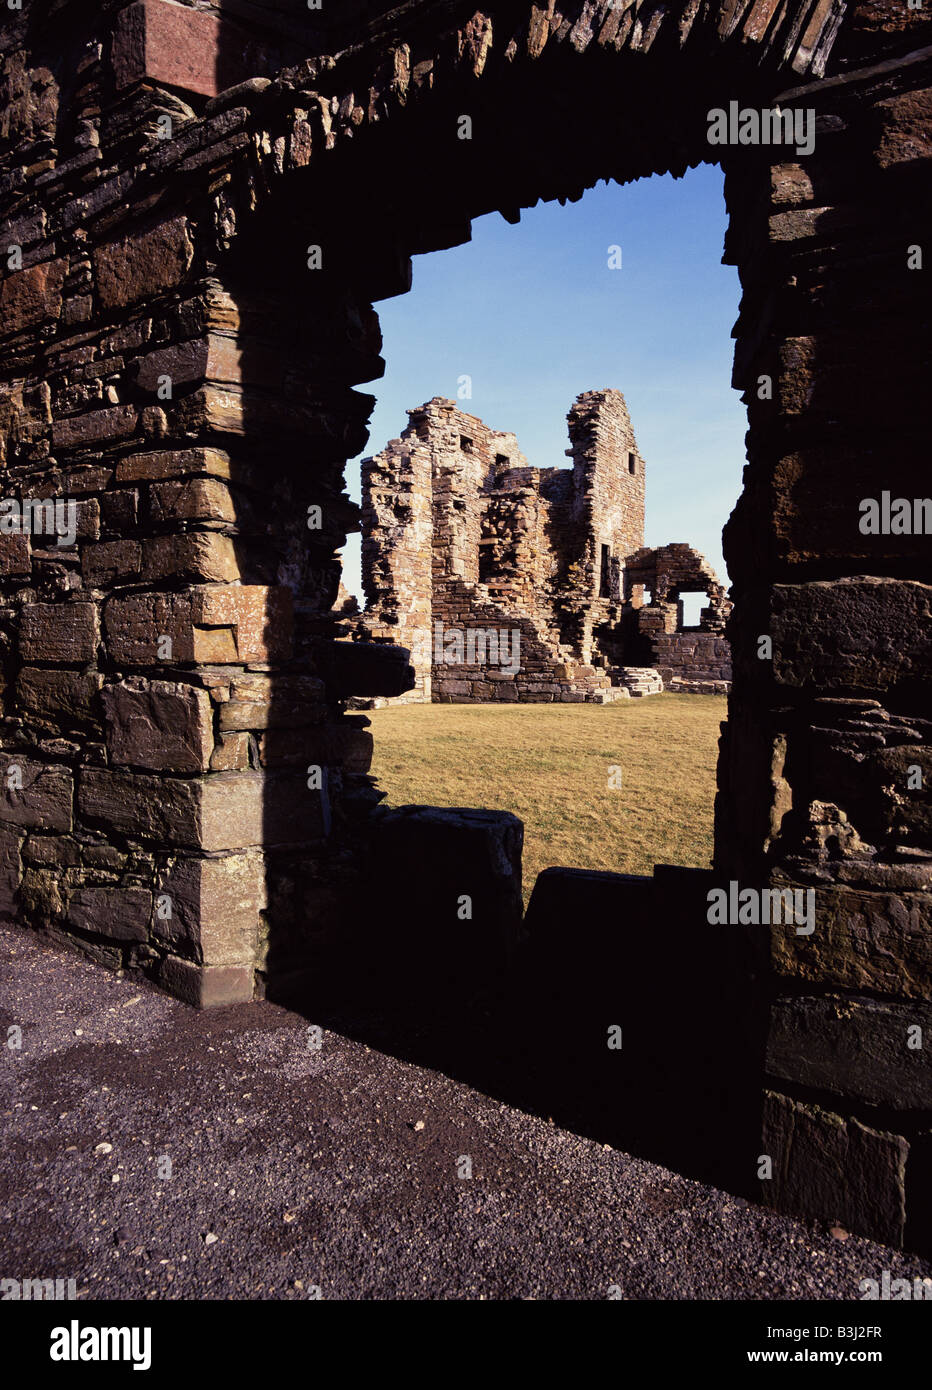 dh Earls Palace BIRSAY ORKNEY Earl Robert Stewart Palace stone walls ruins though doorway in wall Stock Photo